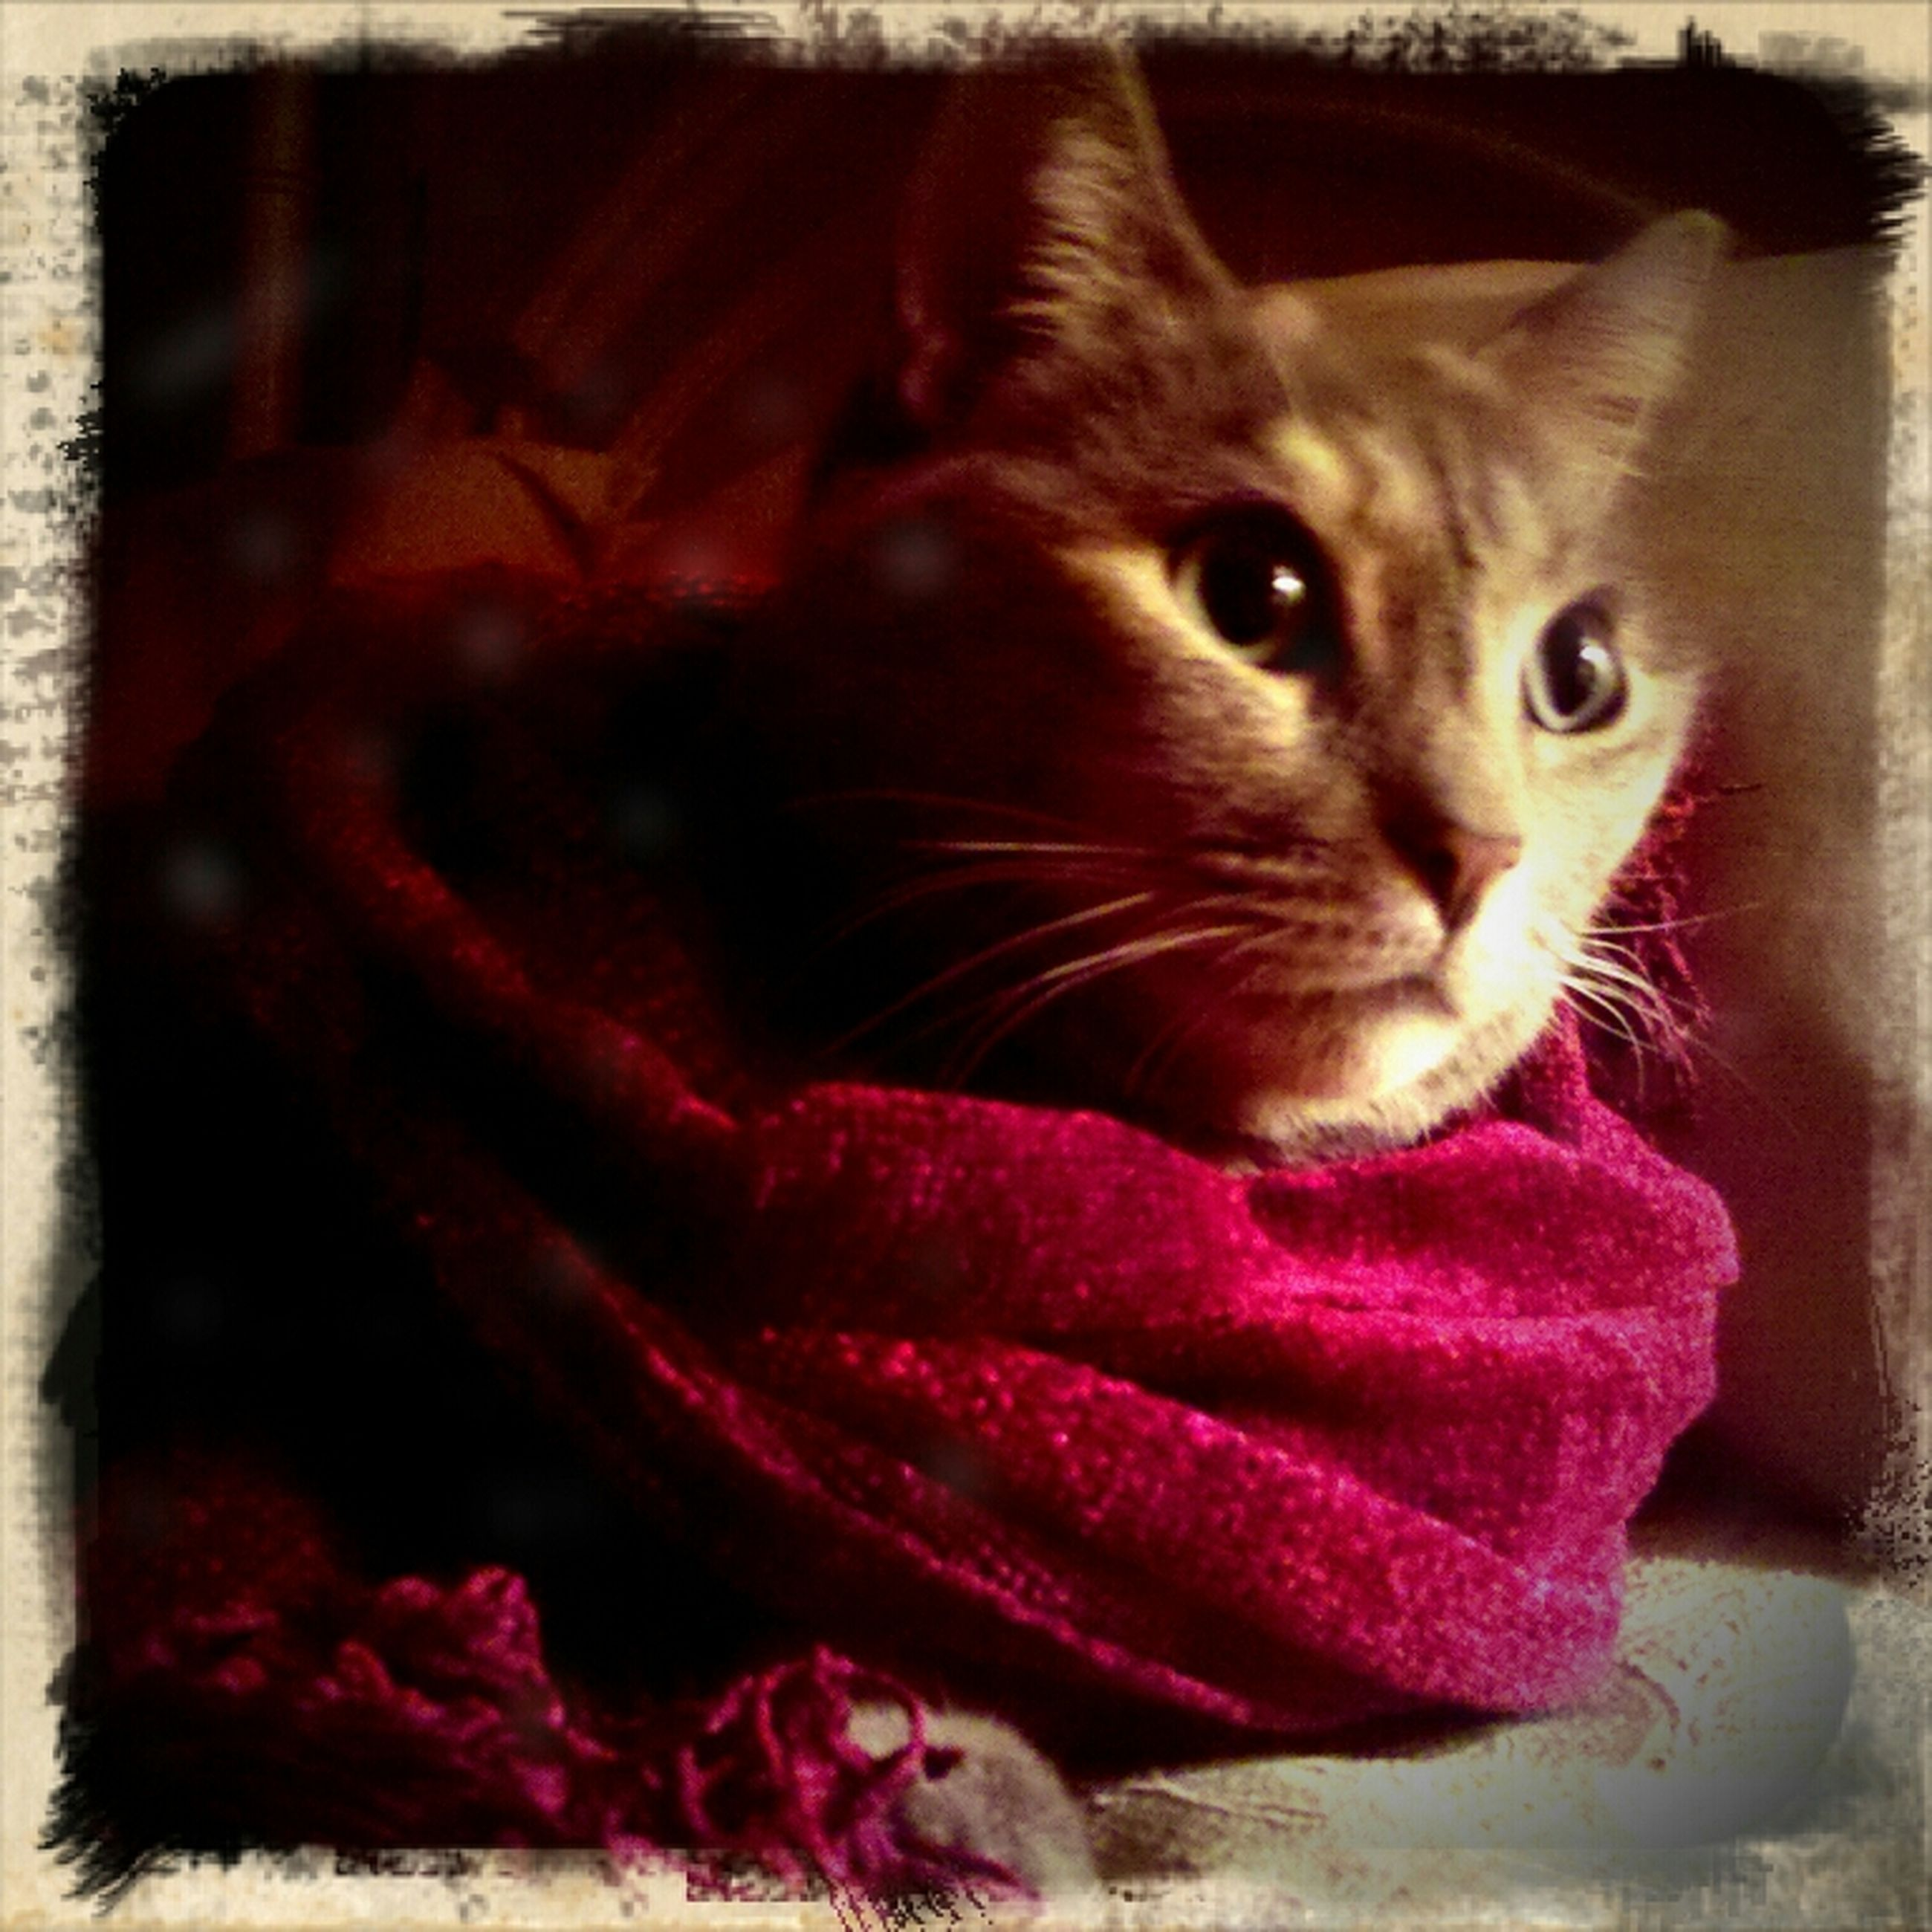 pets, domestic animals, one animal, animal themes, domestic cat, indoors, cat, feline, close-up, mammal, looking at camera, portrait, whisker, home interior, pink color, auto post production filter, flower, transfer print, no people, bed